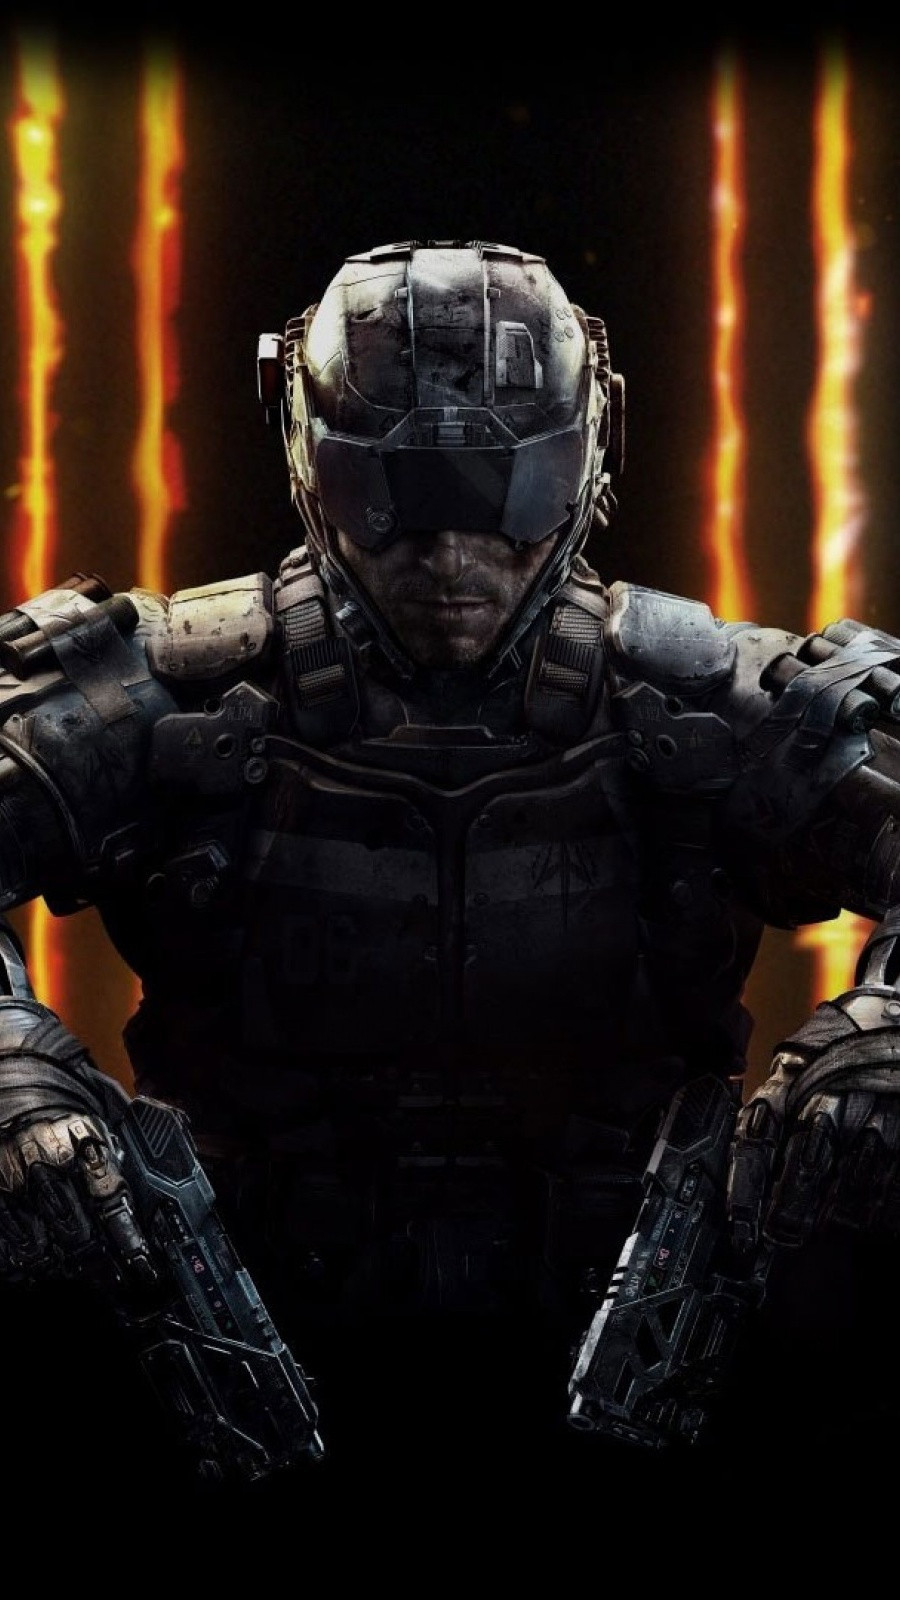 900 Call of Duty Black Ops 3 l